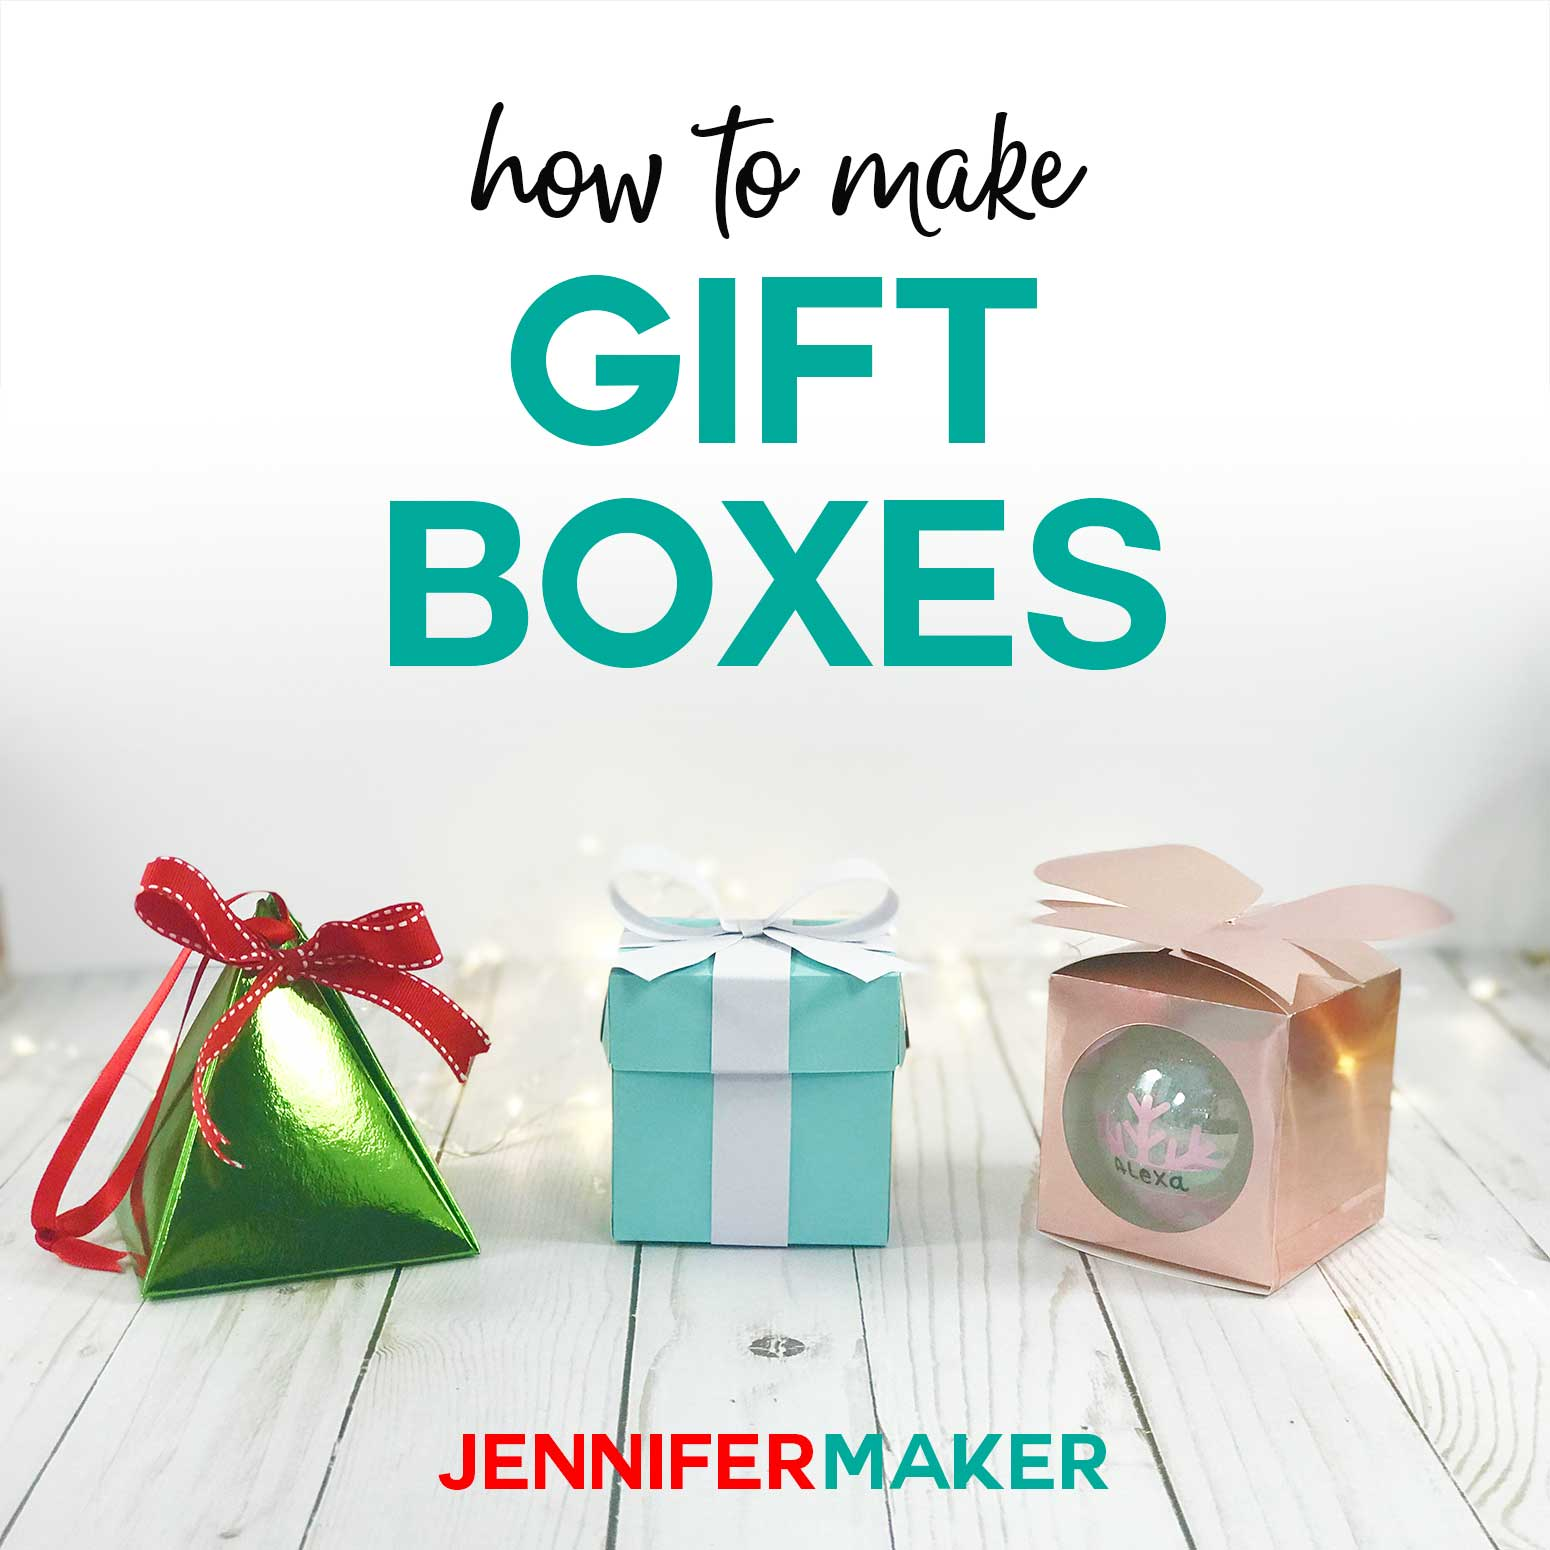 Gift Box Templates Perfect For Handmade Small Gifts Jennifer Maker